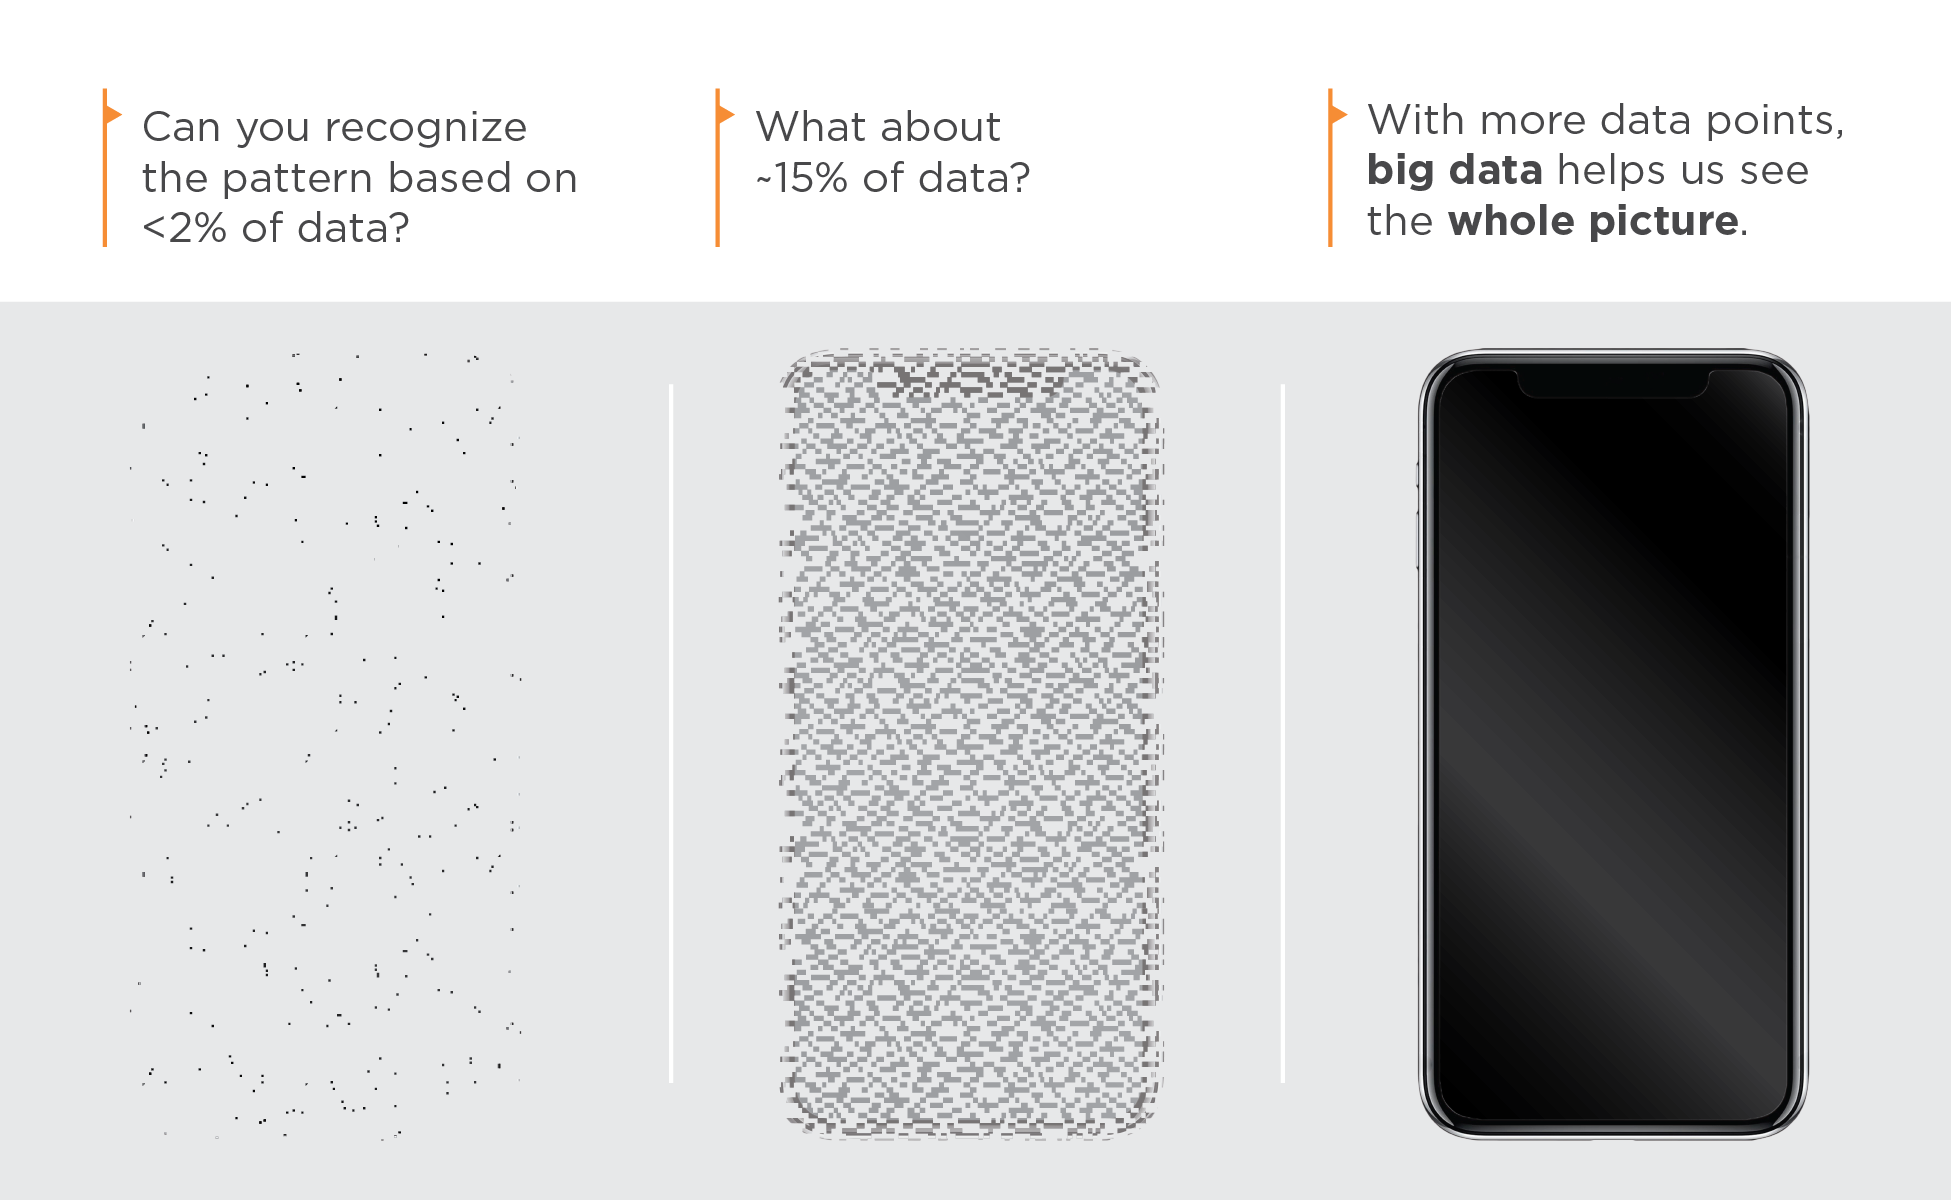 This graphic depicts how big data can help obtain the big picture. It shows a cell phone at 2% resolution on the far left, 15% resolution in the middle, and full resolution on the far right.